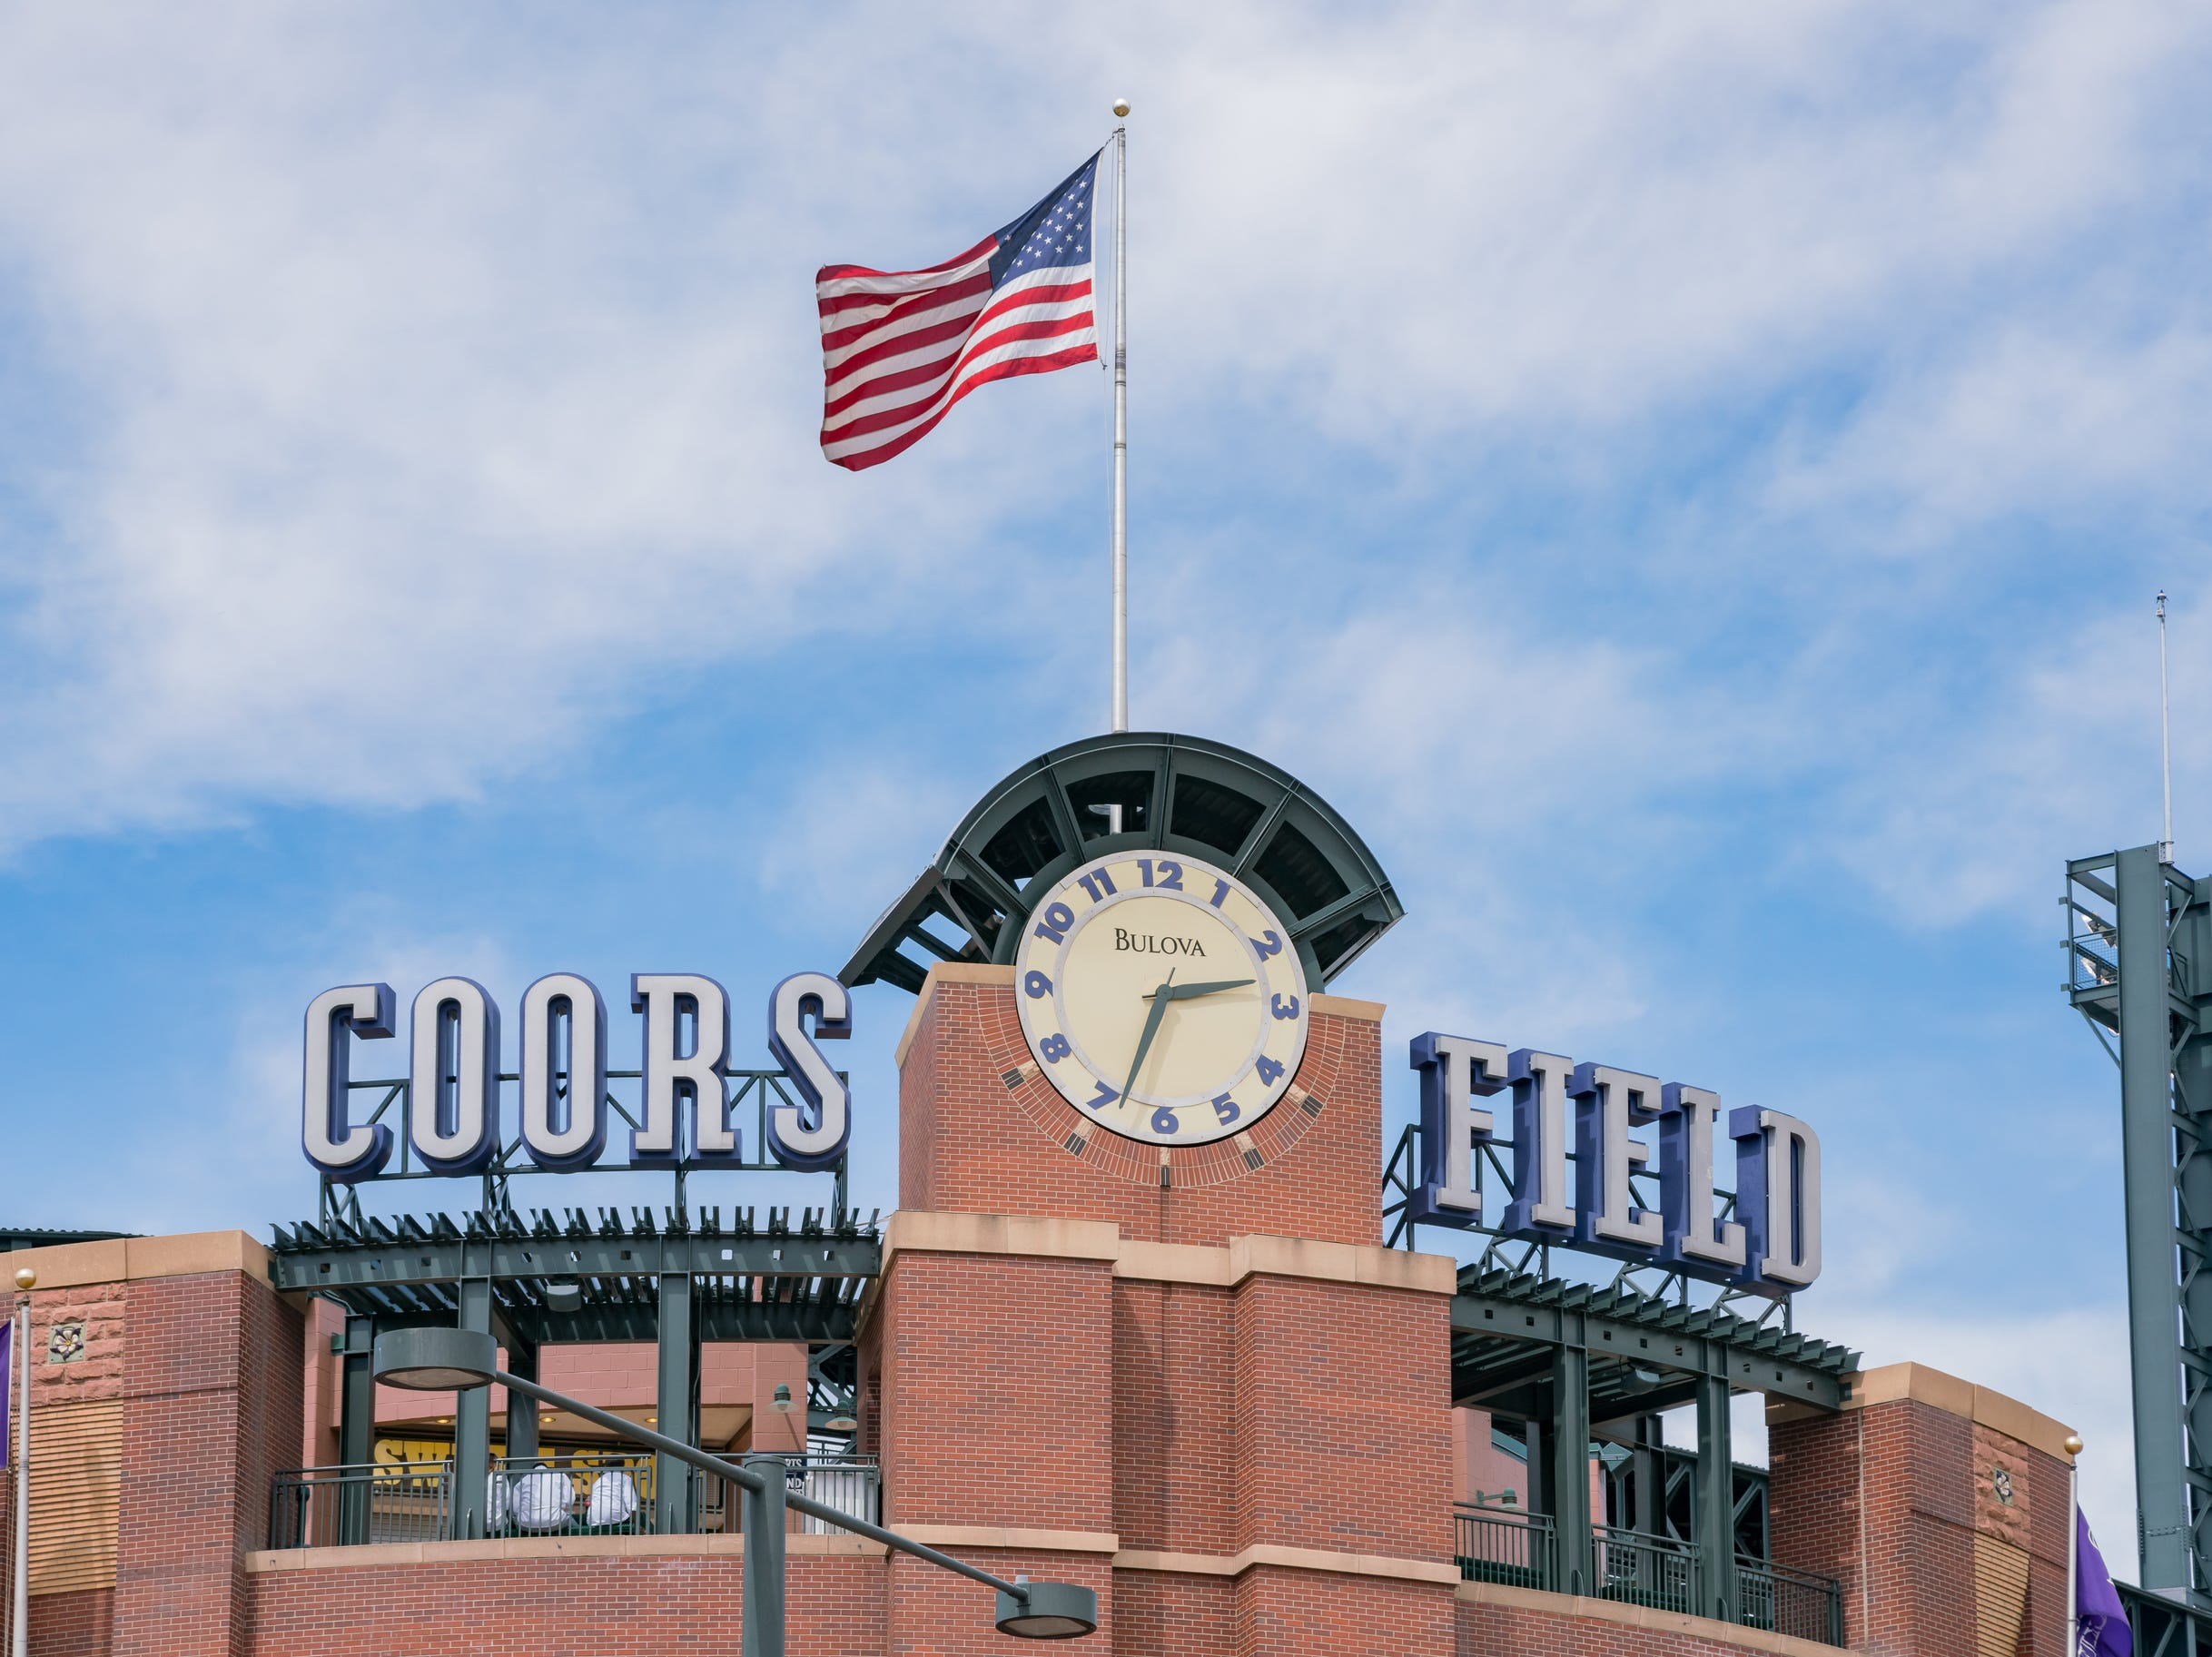 Denver, MAY 7: Exterior view of Coors Field on MAY 7, 2017 at Denver, Colorado - Denver Chon Kit Leong Coors Field